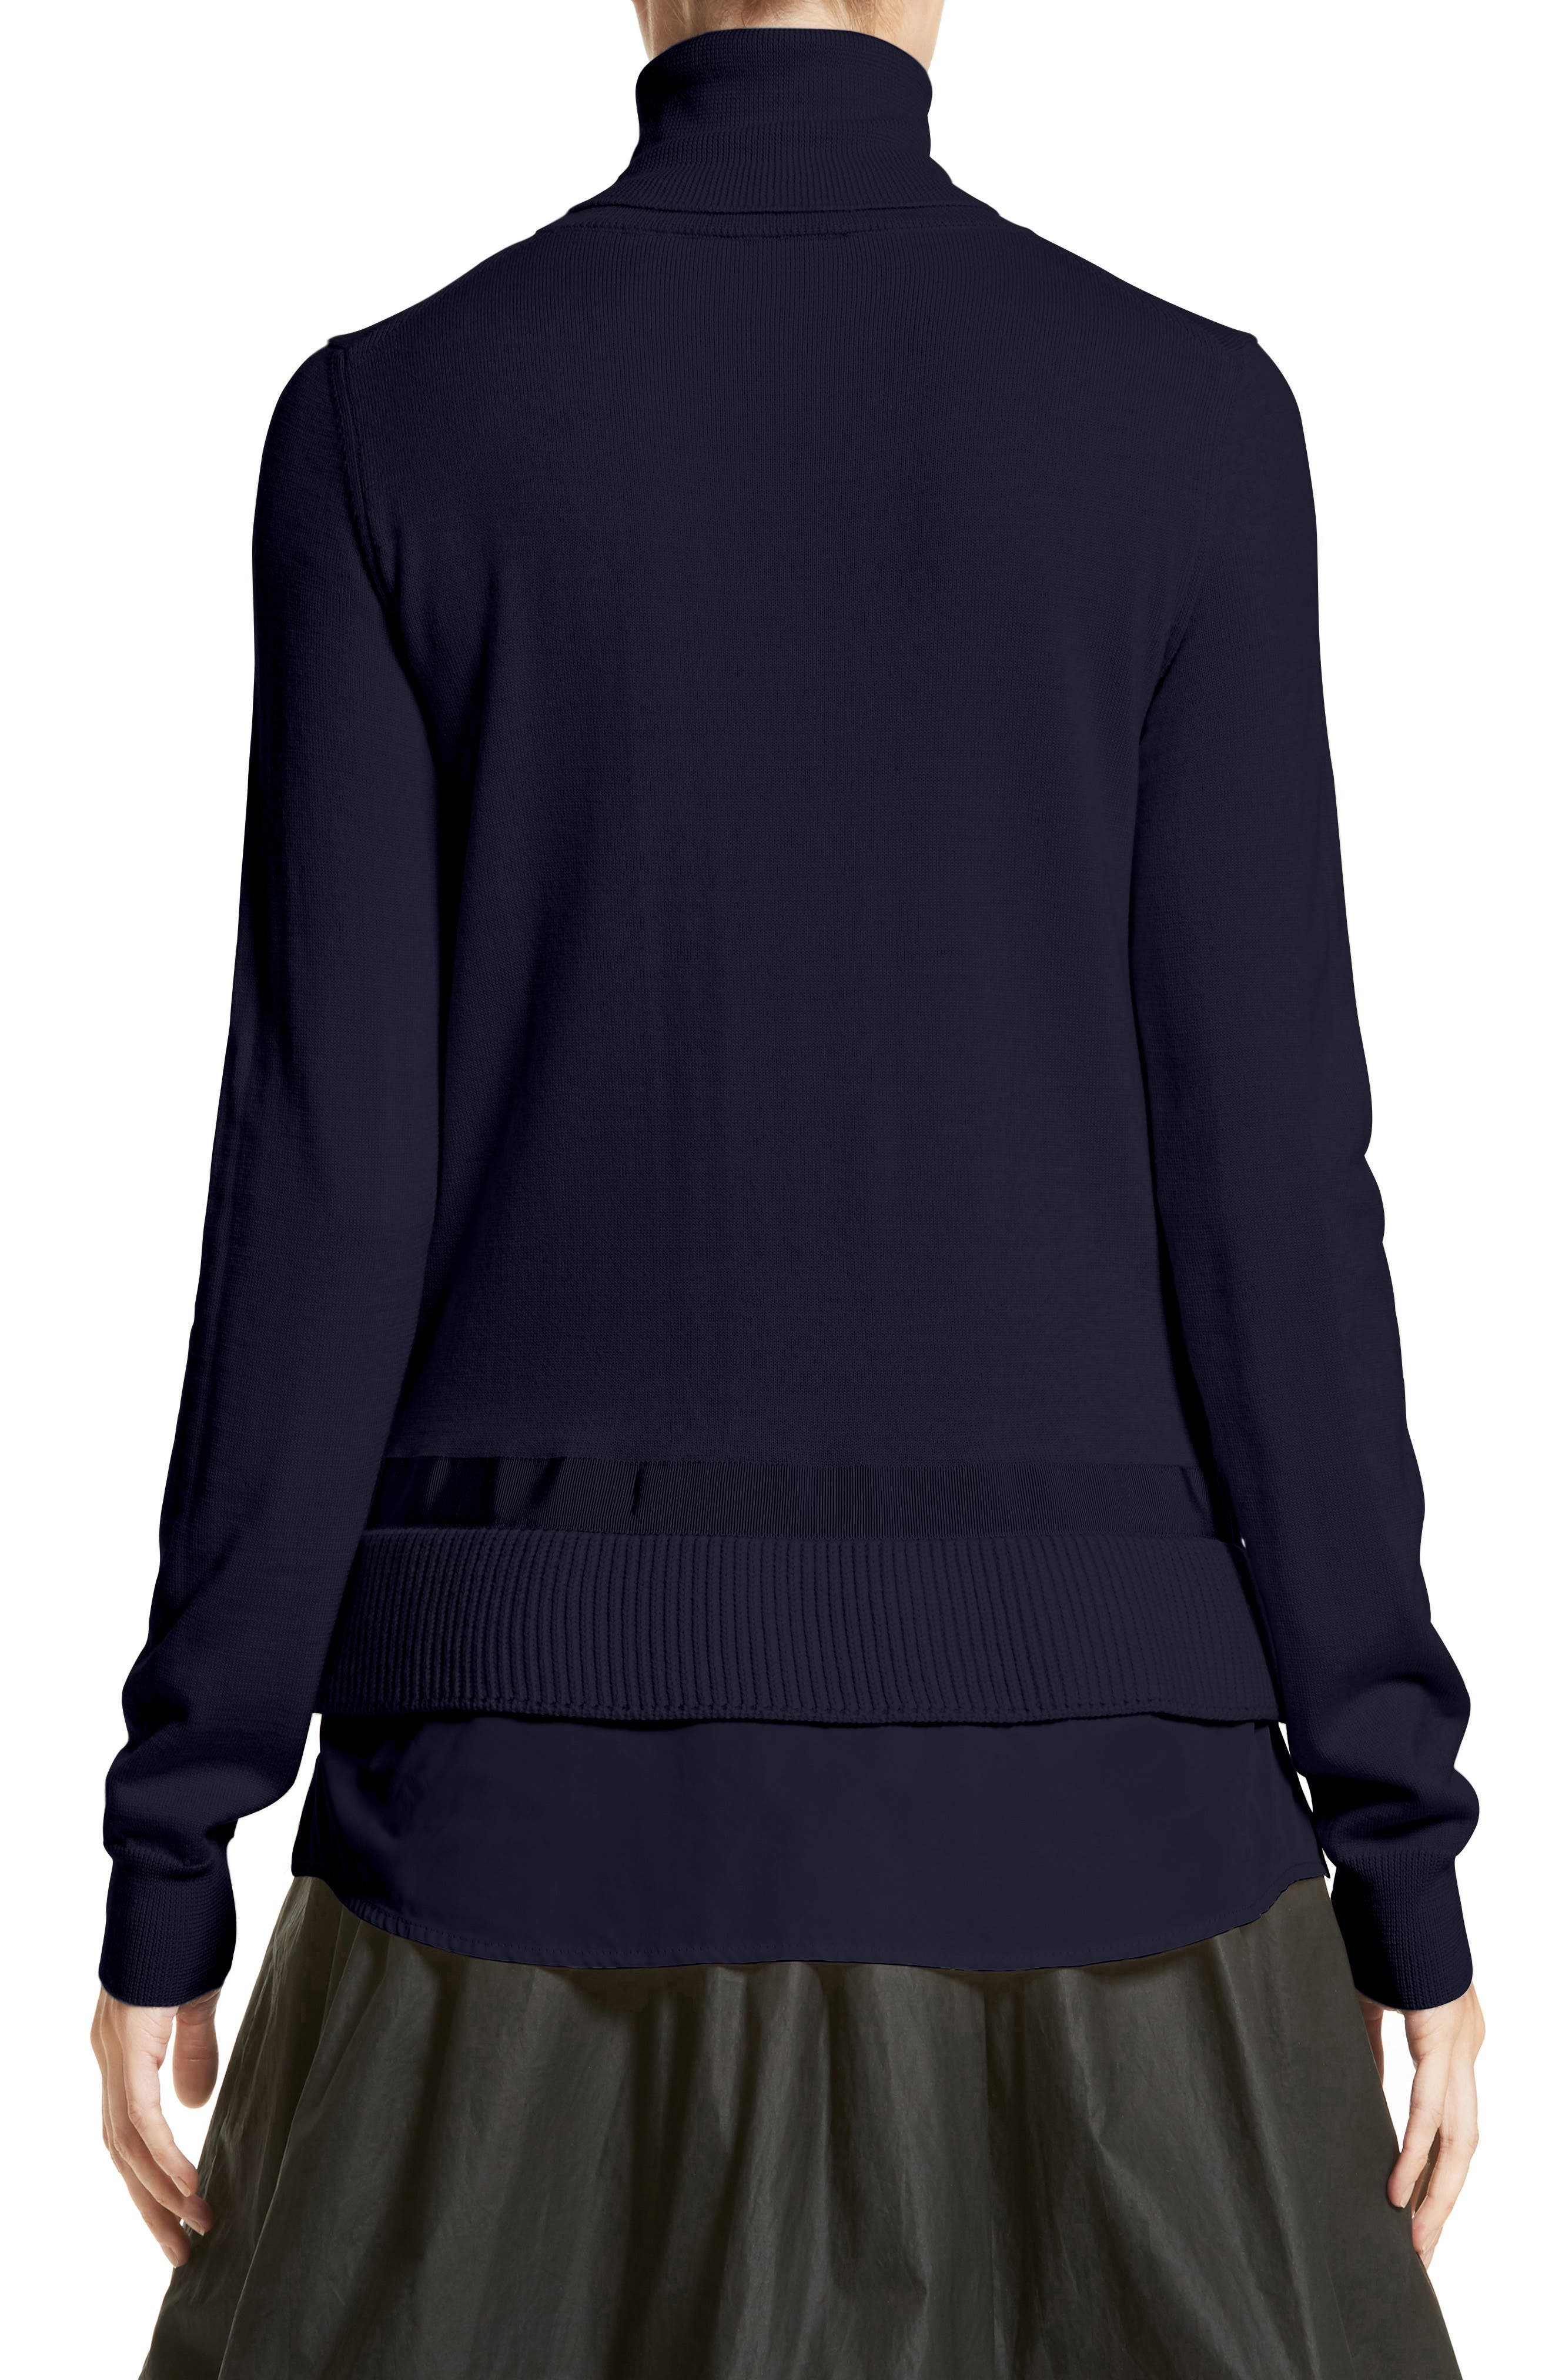 Alternate Image 2  - Moncler Ciclista Tricot Knit Wool Turtleneck Sweater